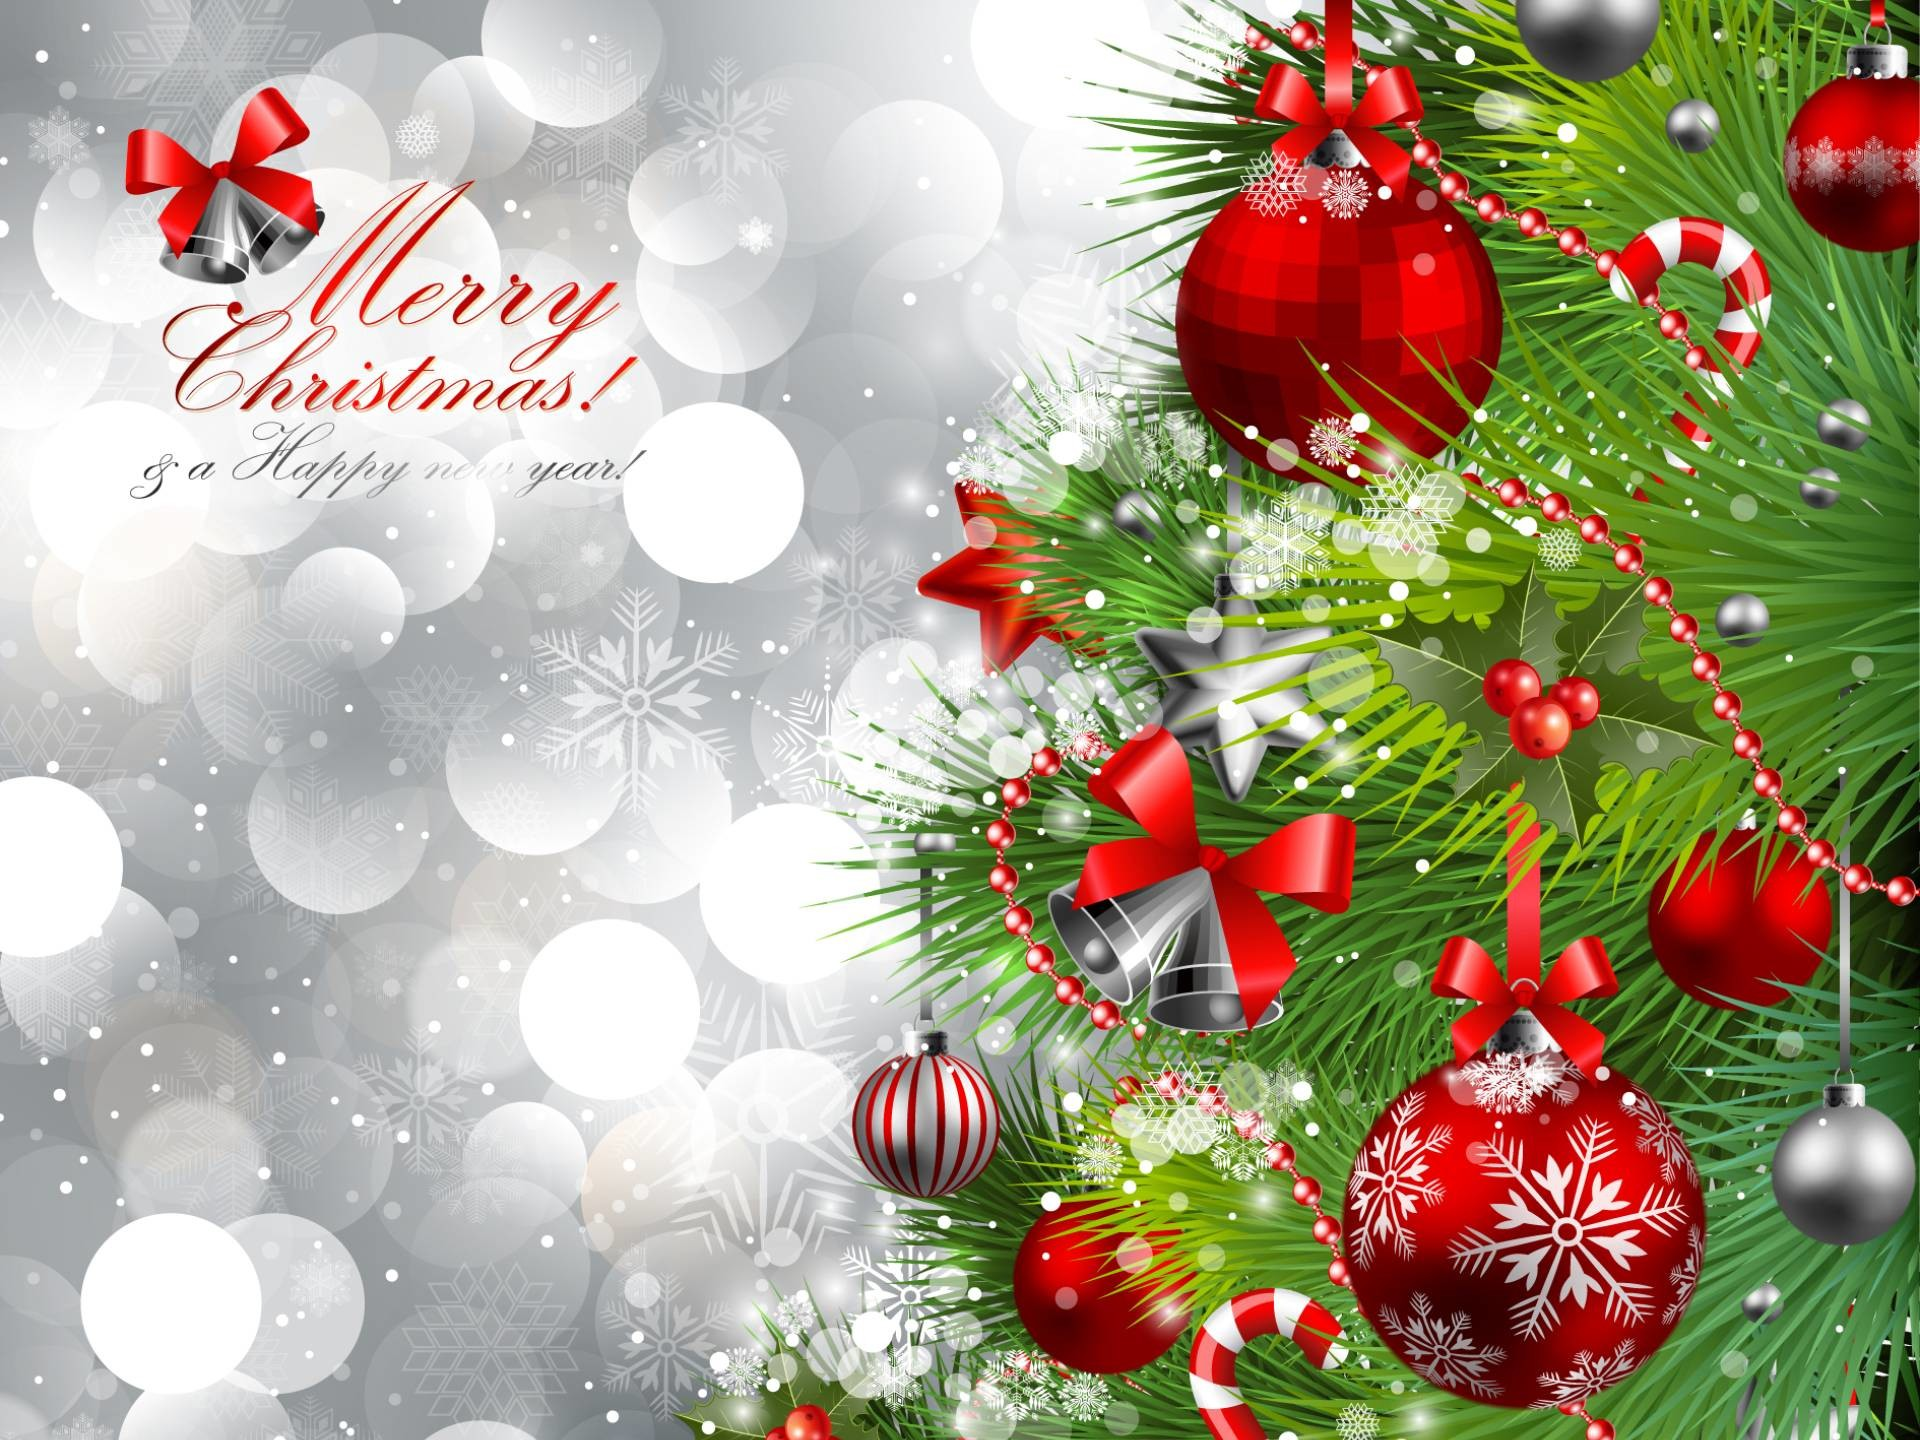 1920x1440 Merry Christmas Backgrounds Wallpapers - Wallpaper Cave